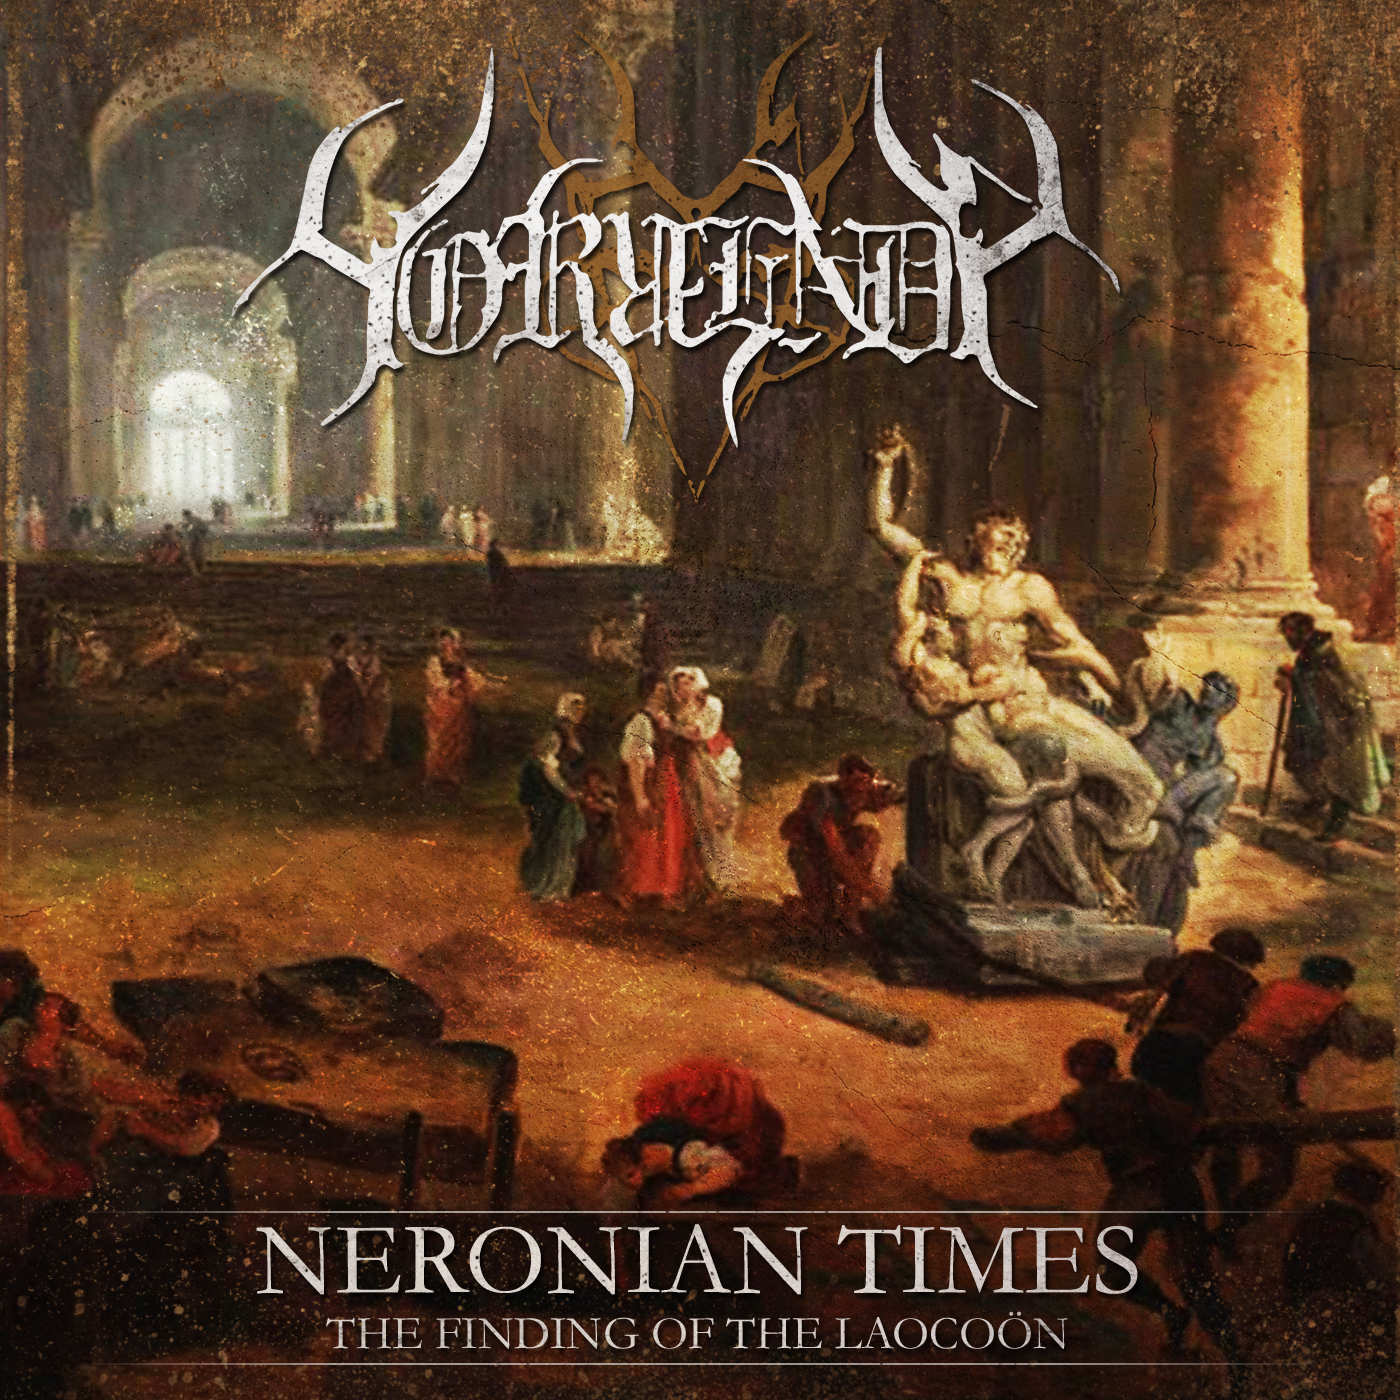 Horrenda - Neronian Times (Remaster) Front Cover